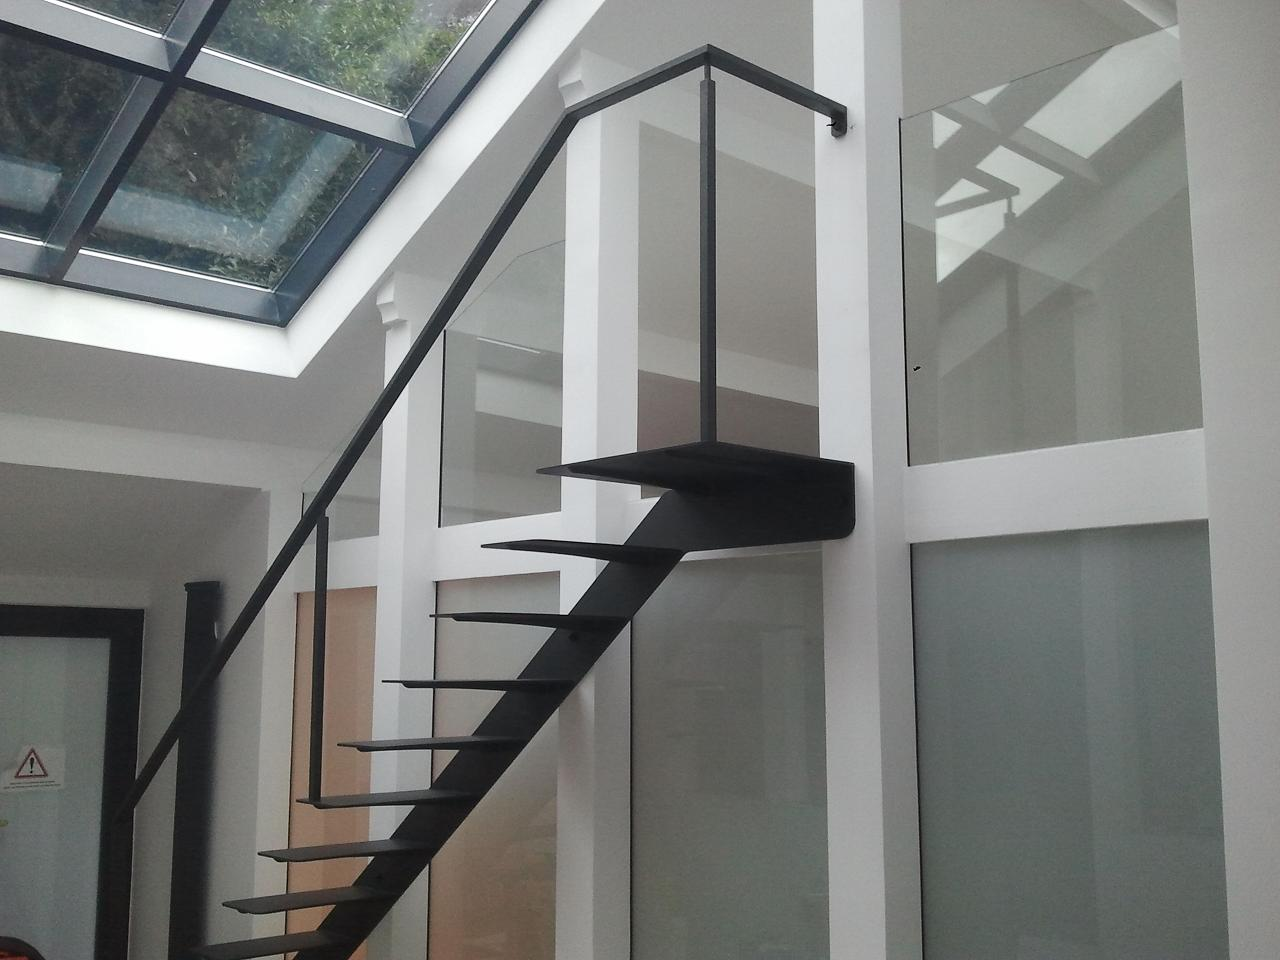 Les escaliers en f t atmosphere metallique for Escalier metallique interieur